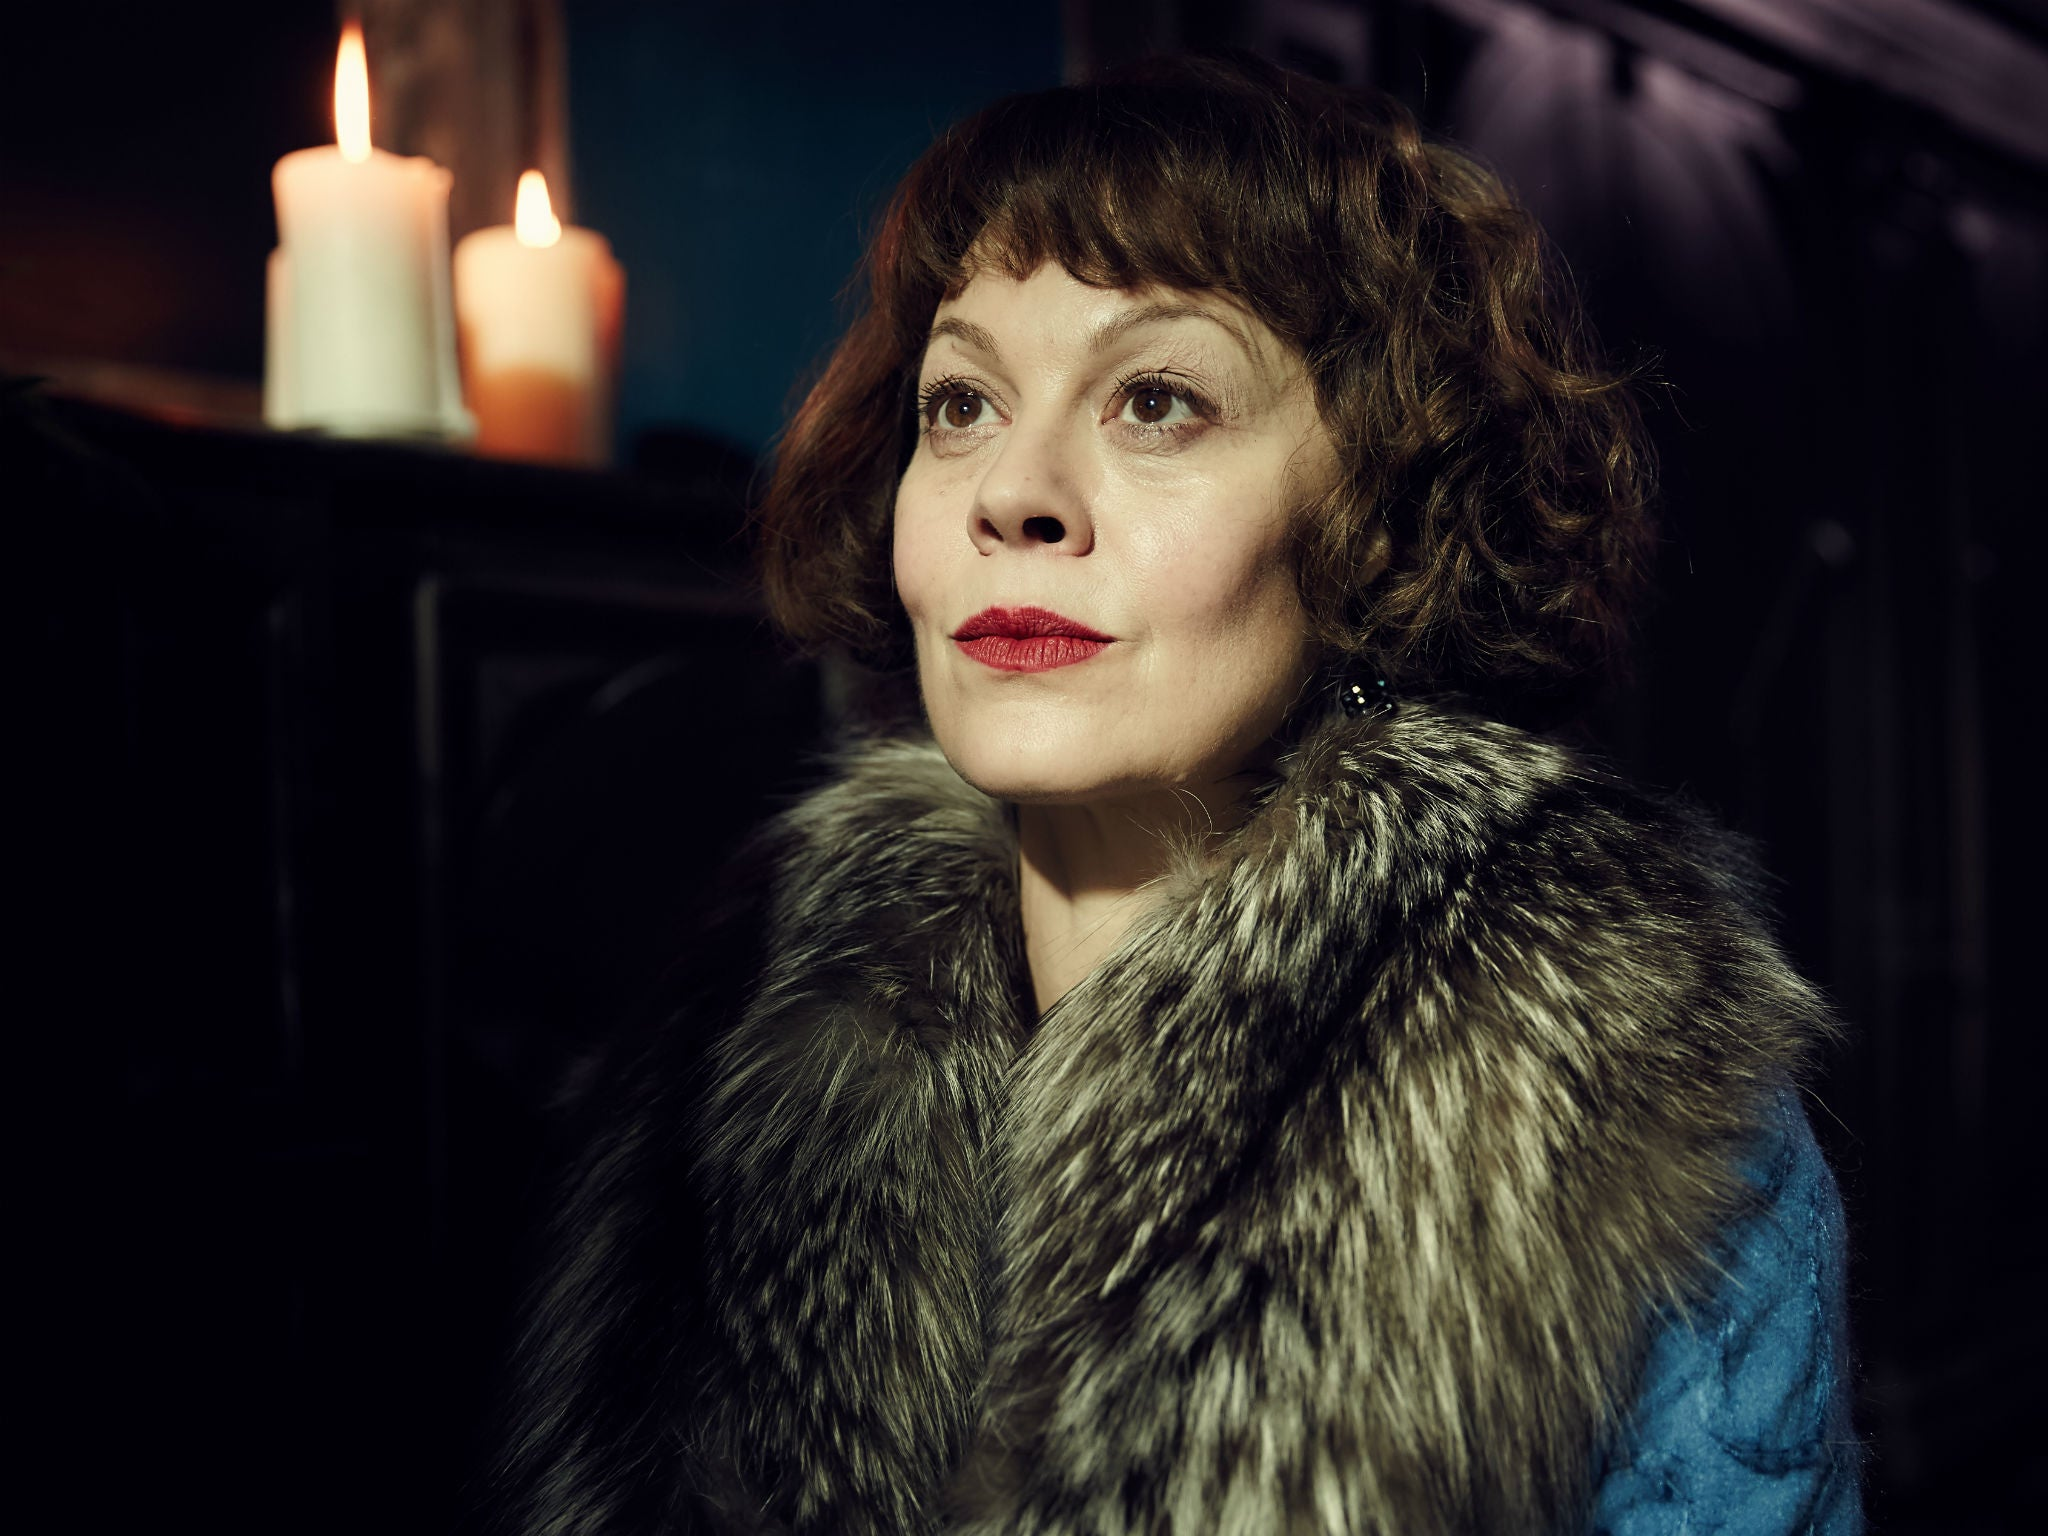 Helen Mccrory Leaving helen mccrory interview: 'i have no interest in 'strong